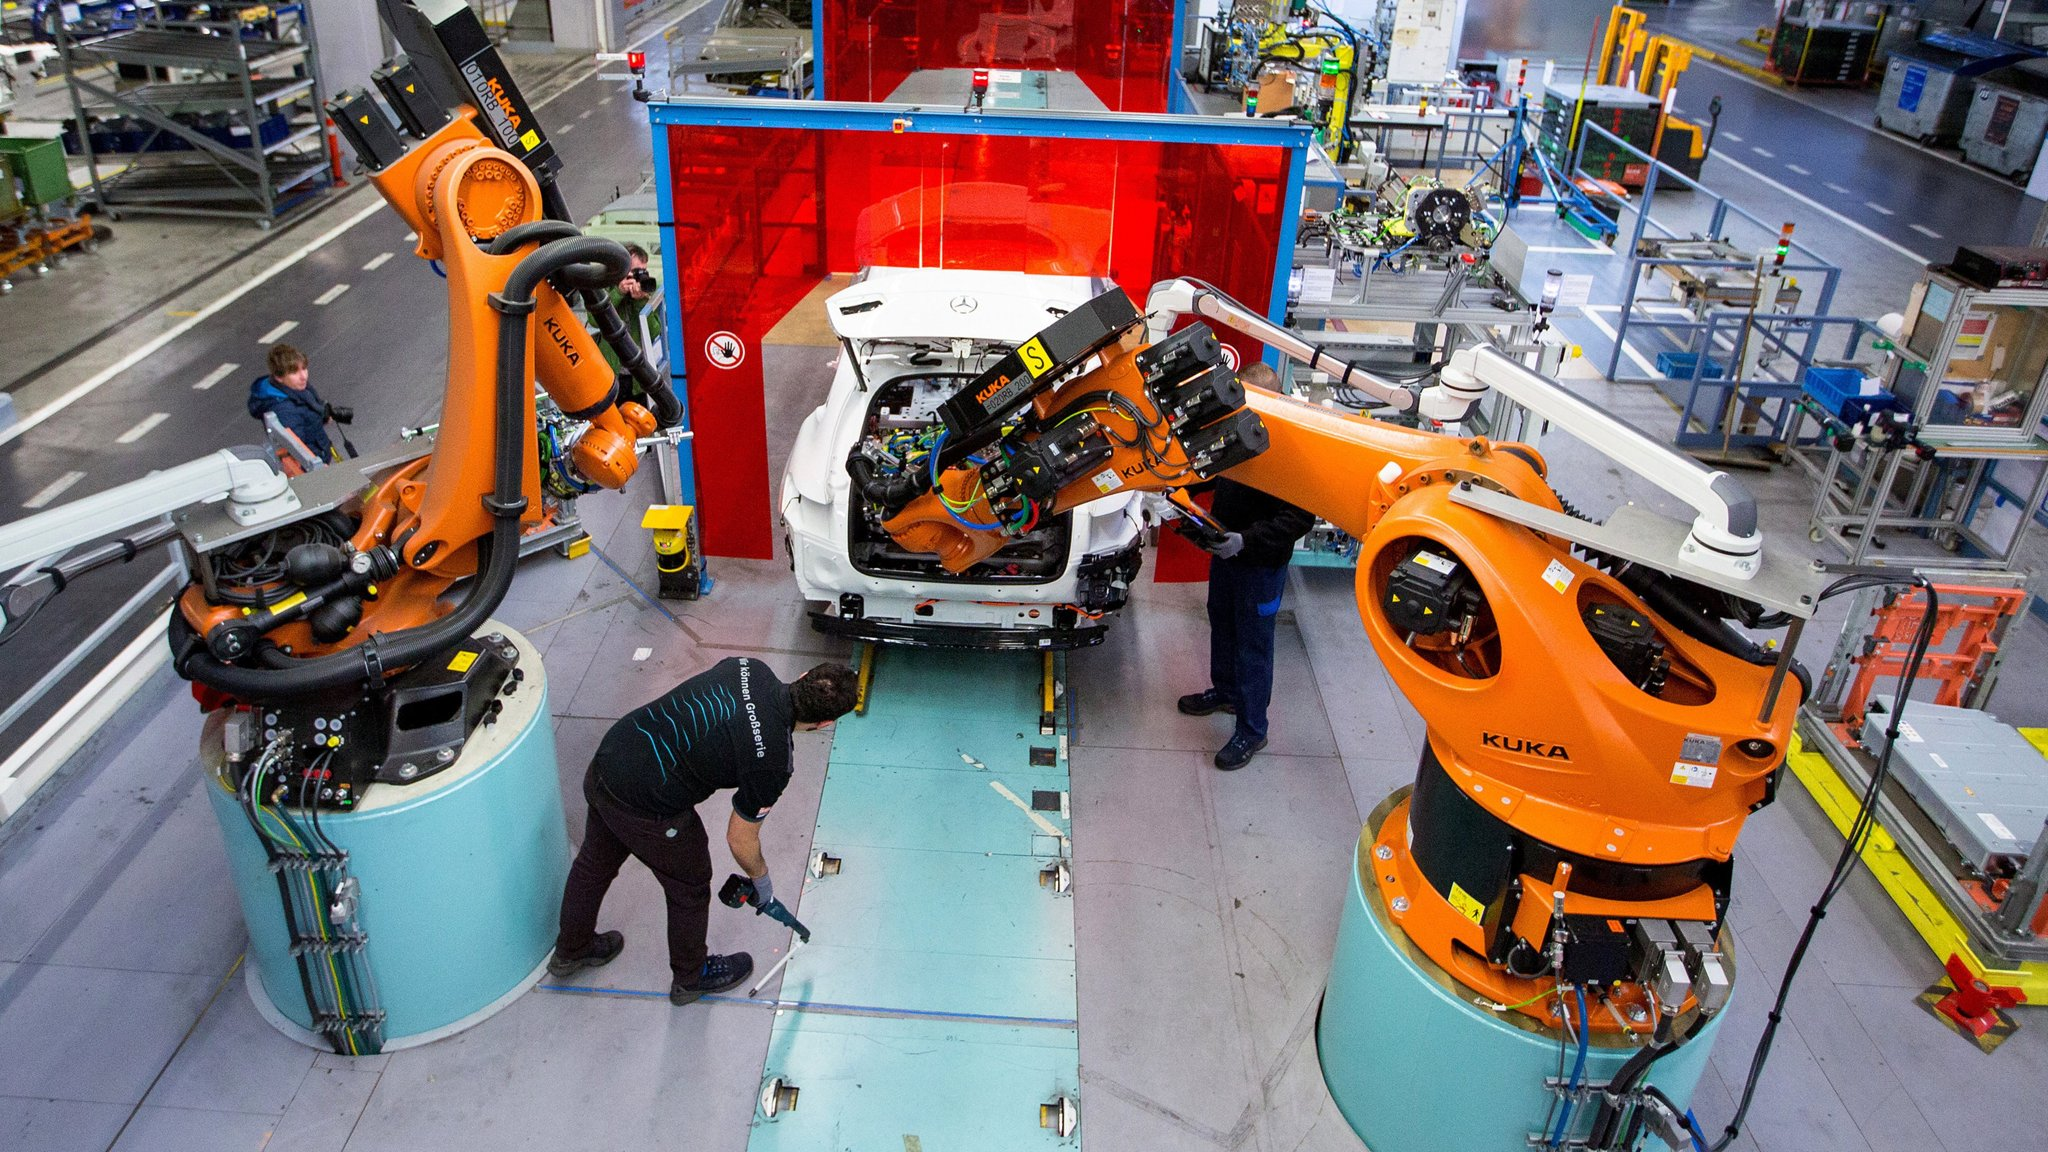 Coolest Car In The World >> Germany's Kuka plans move into world of personal assistant robots